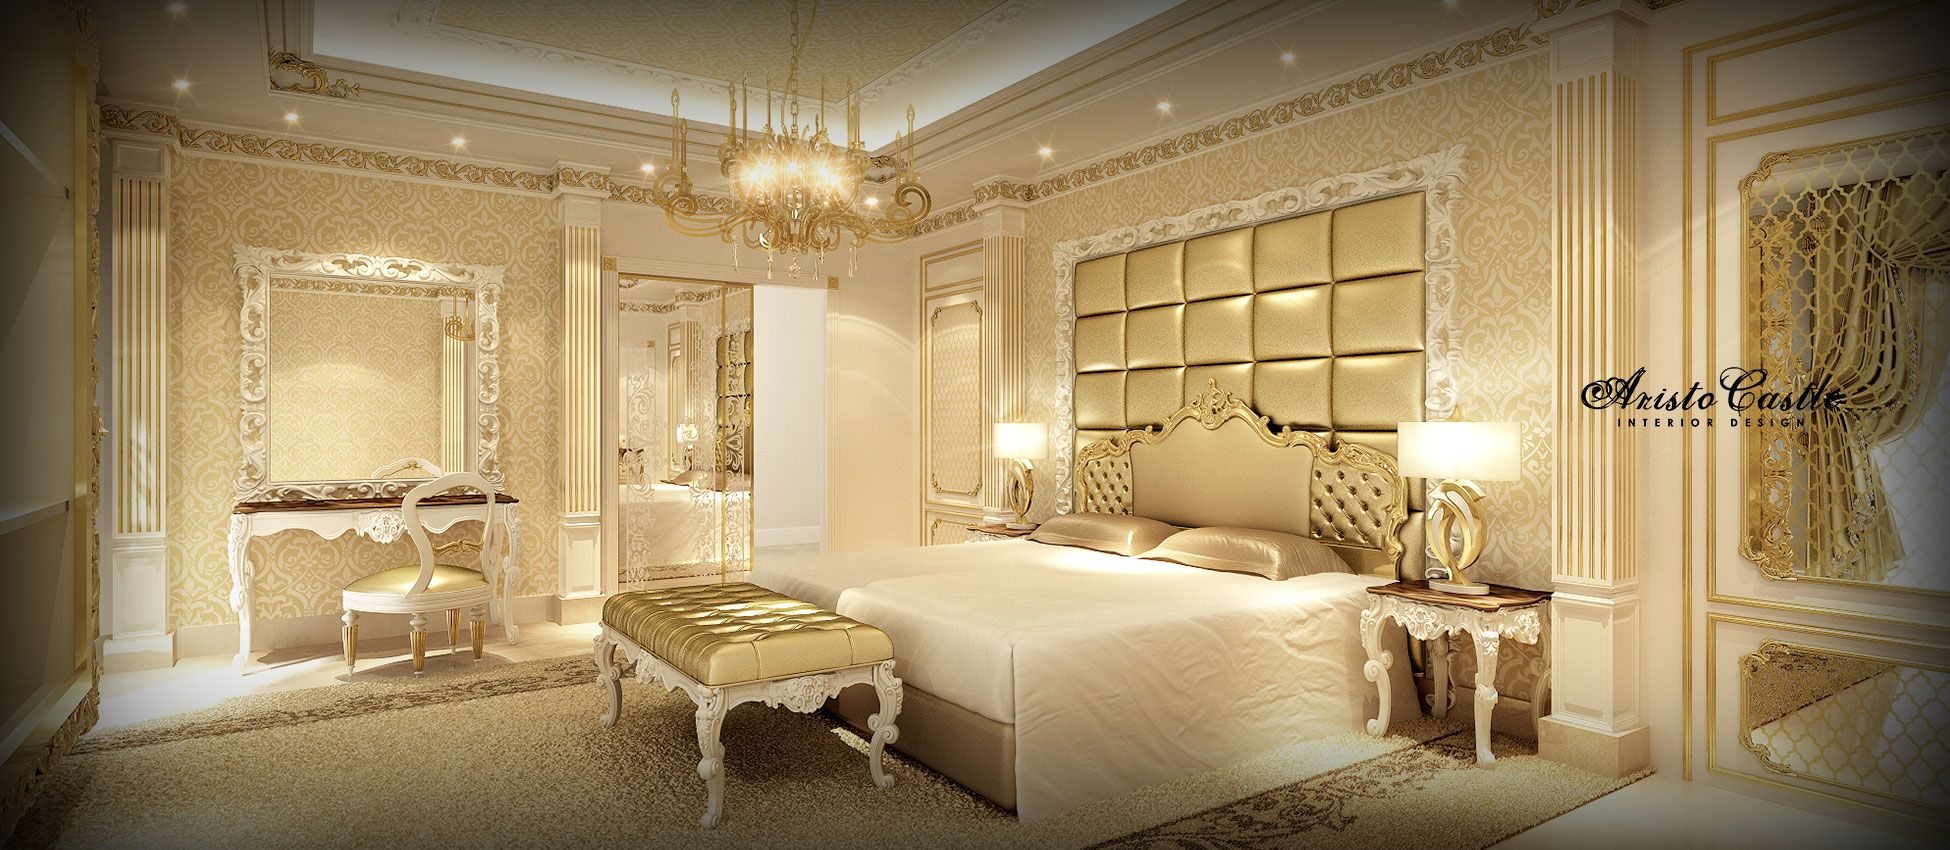 Dubai luxury interior design luxury master bedroom for Best luxury interior designers